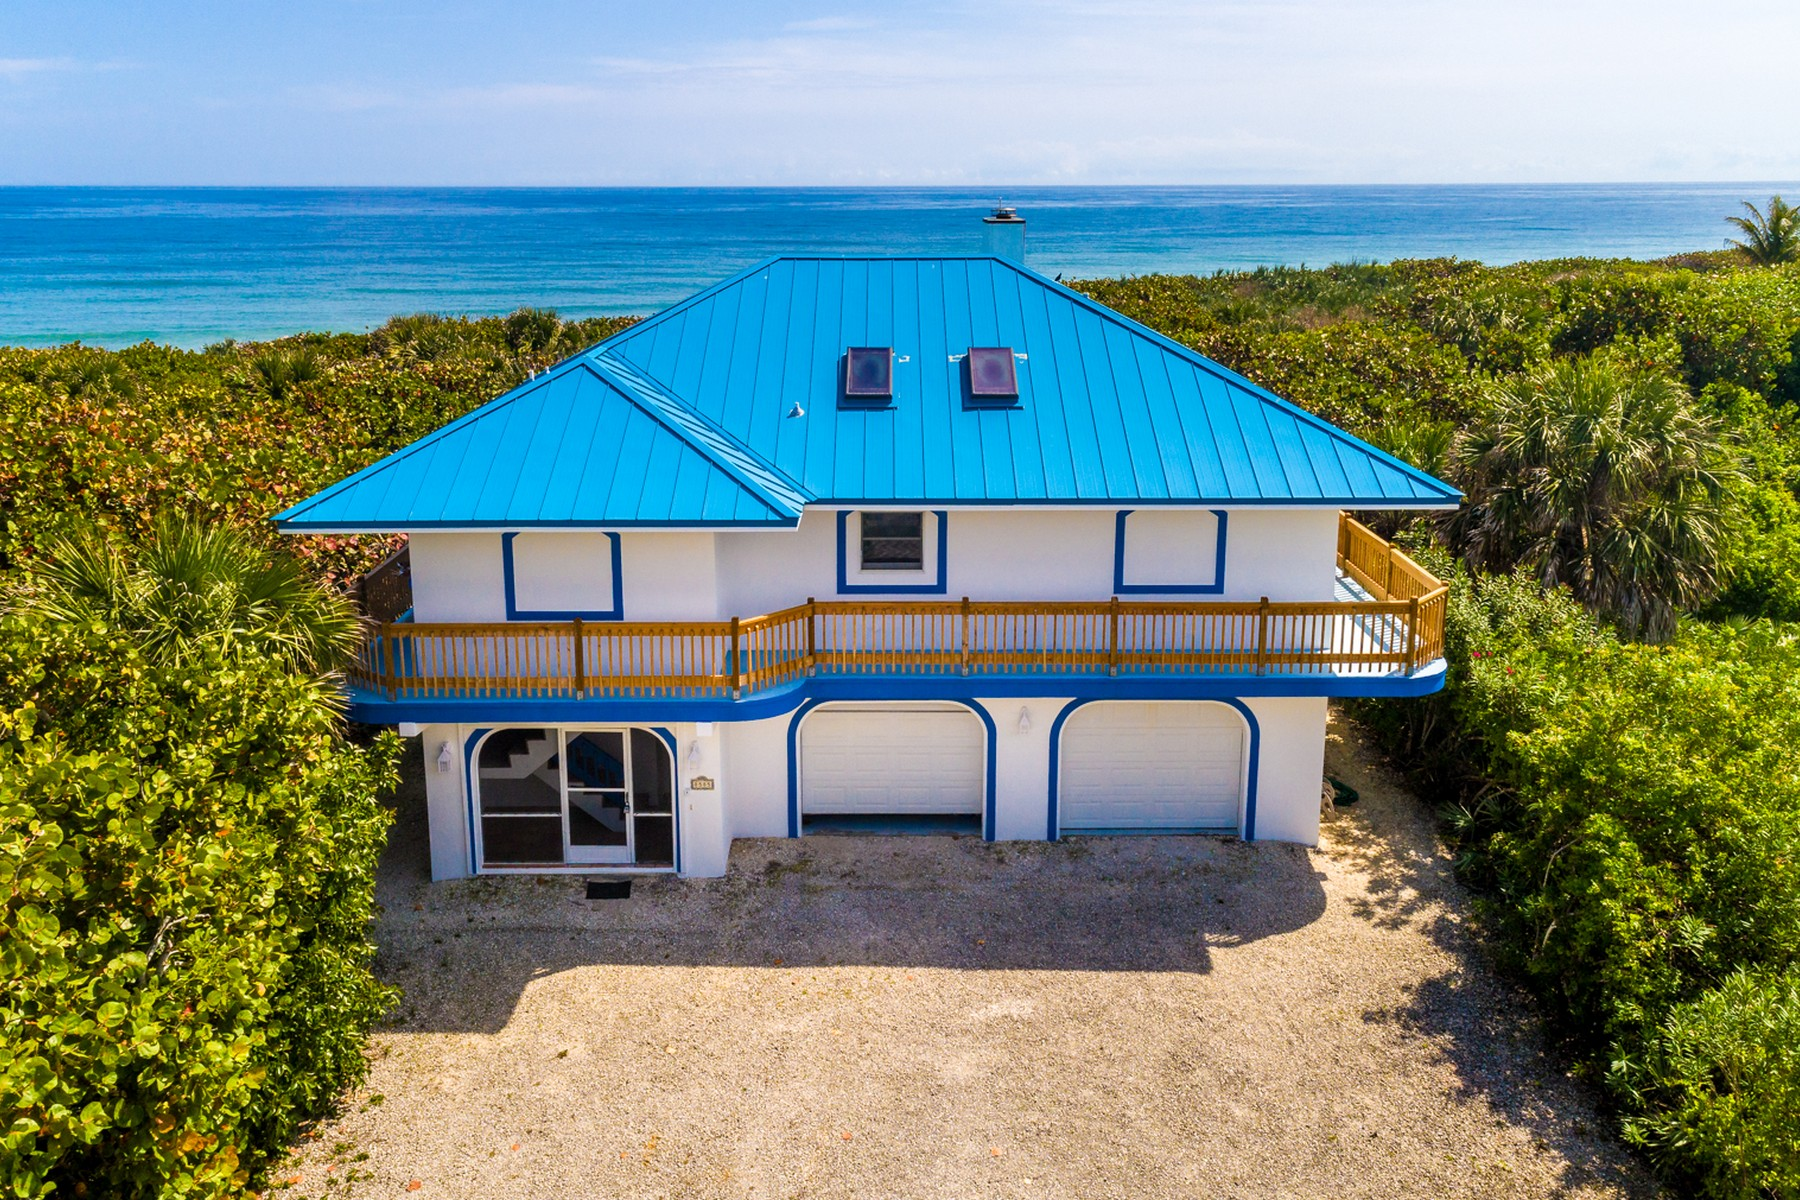 Single Family Home for Sale at Tropical Oceanfront Paradise in Melbourne Beach 8585 S Highway A1A Melbourne Beach, Florida 32951 United States